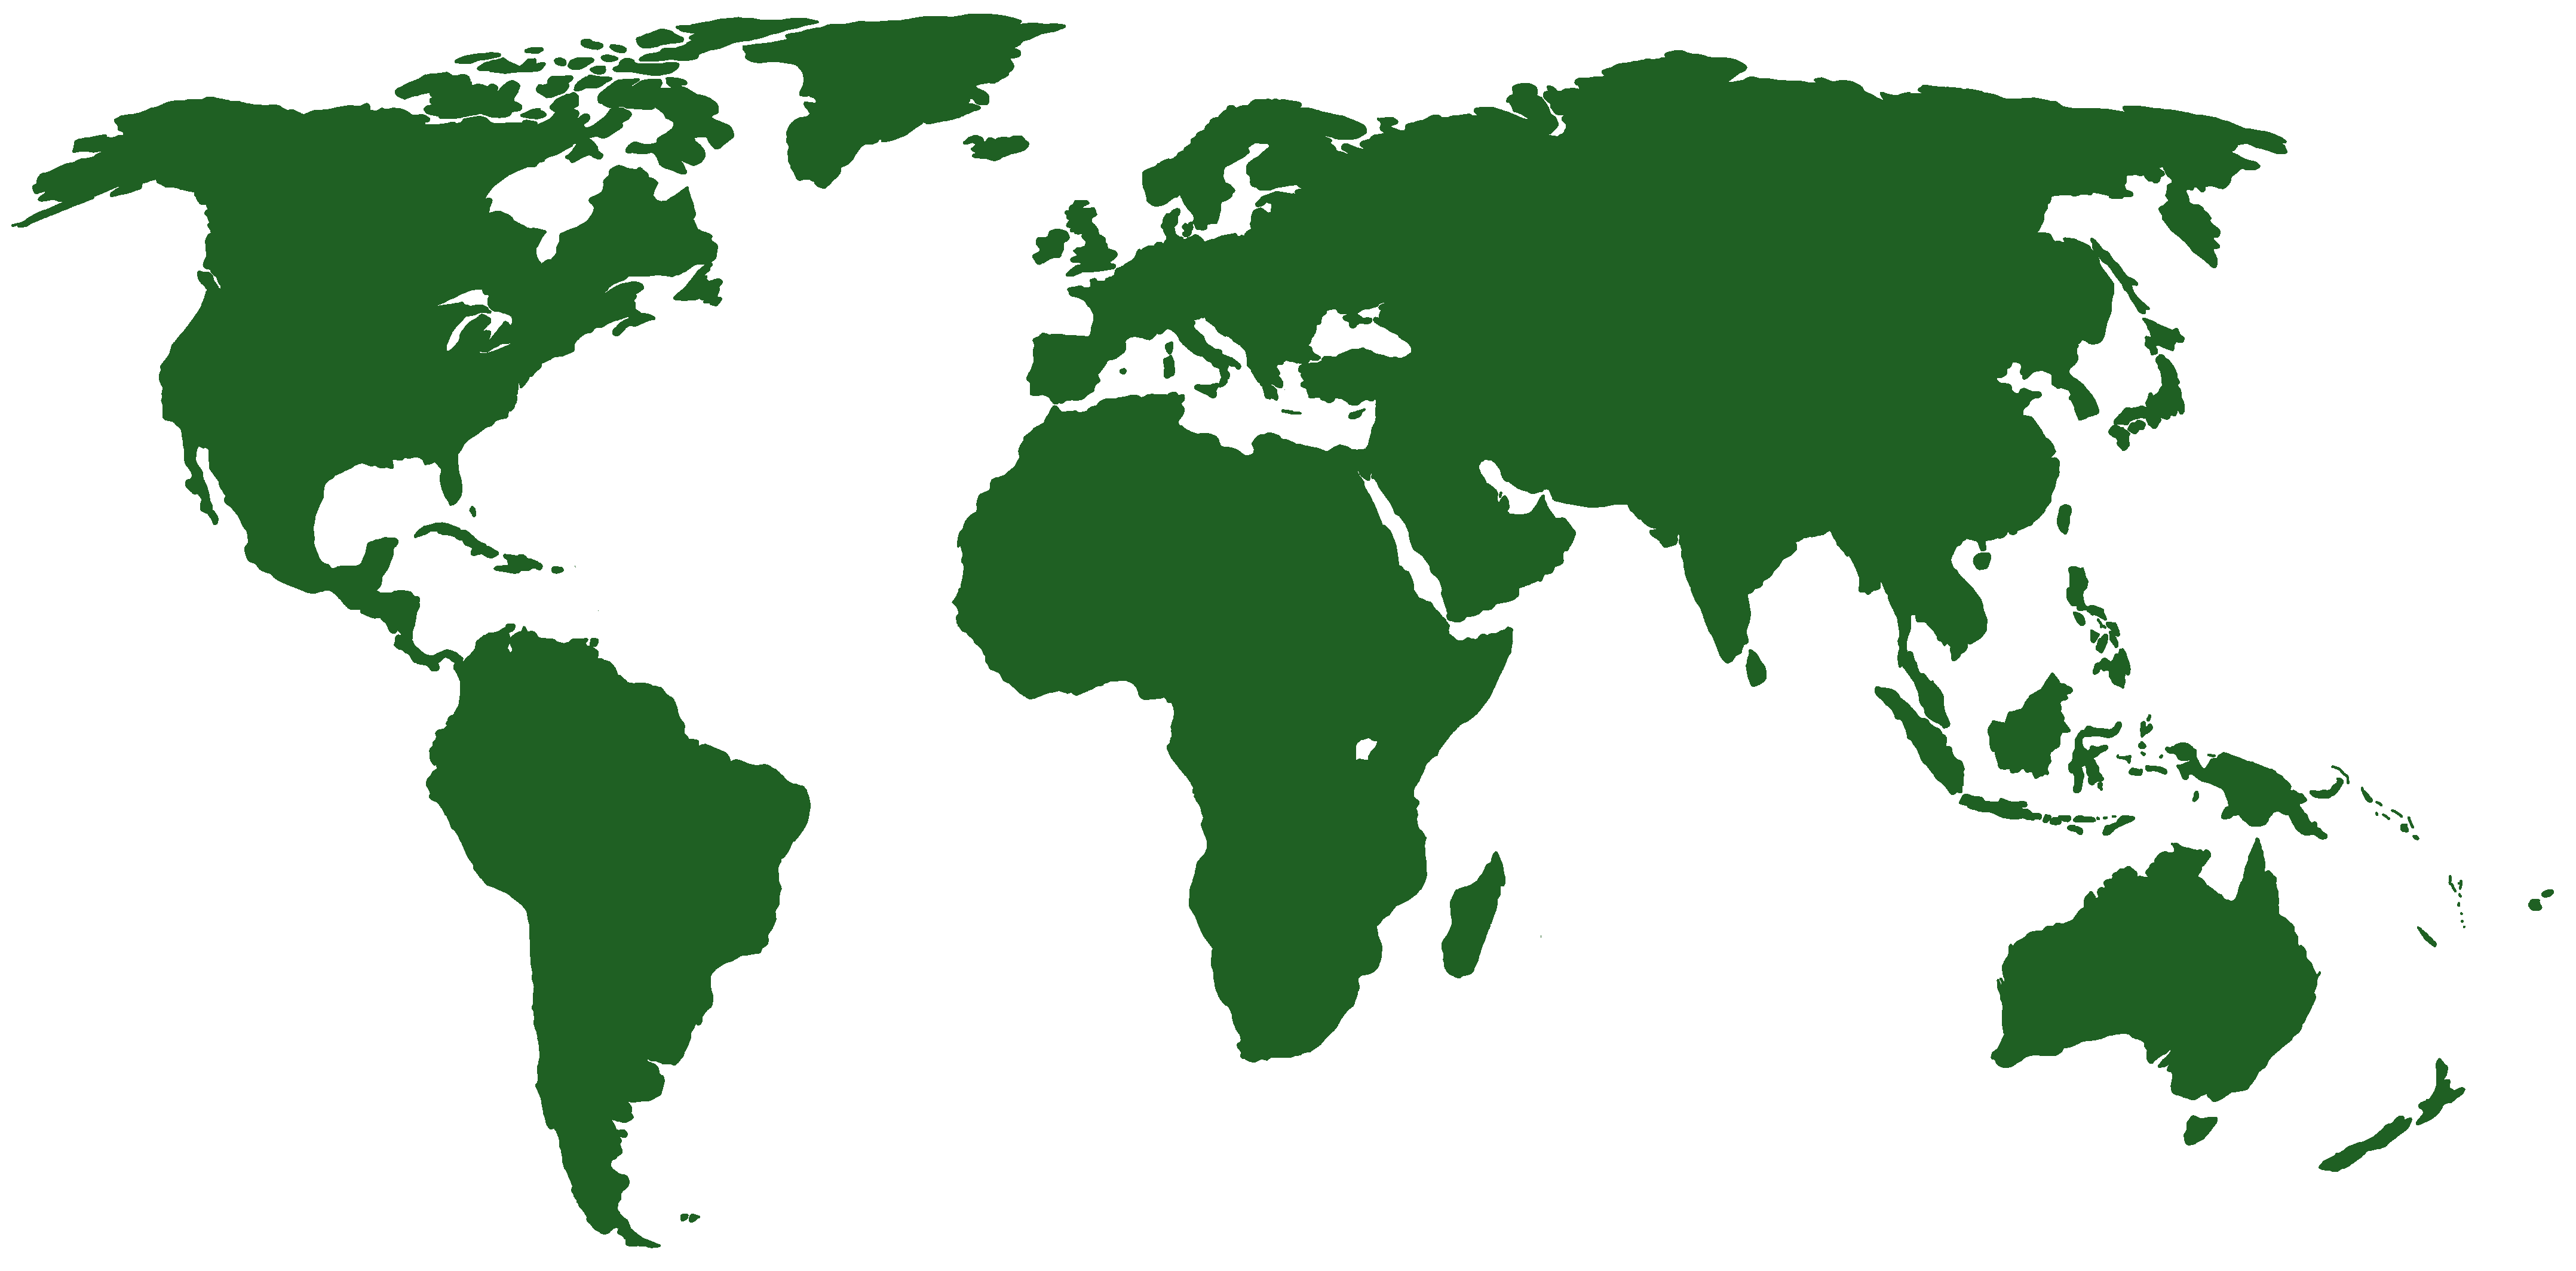 World Map with playground locations